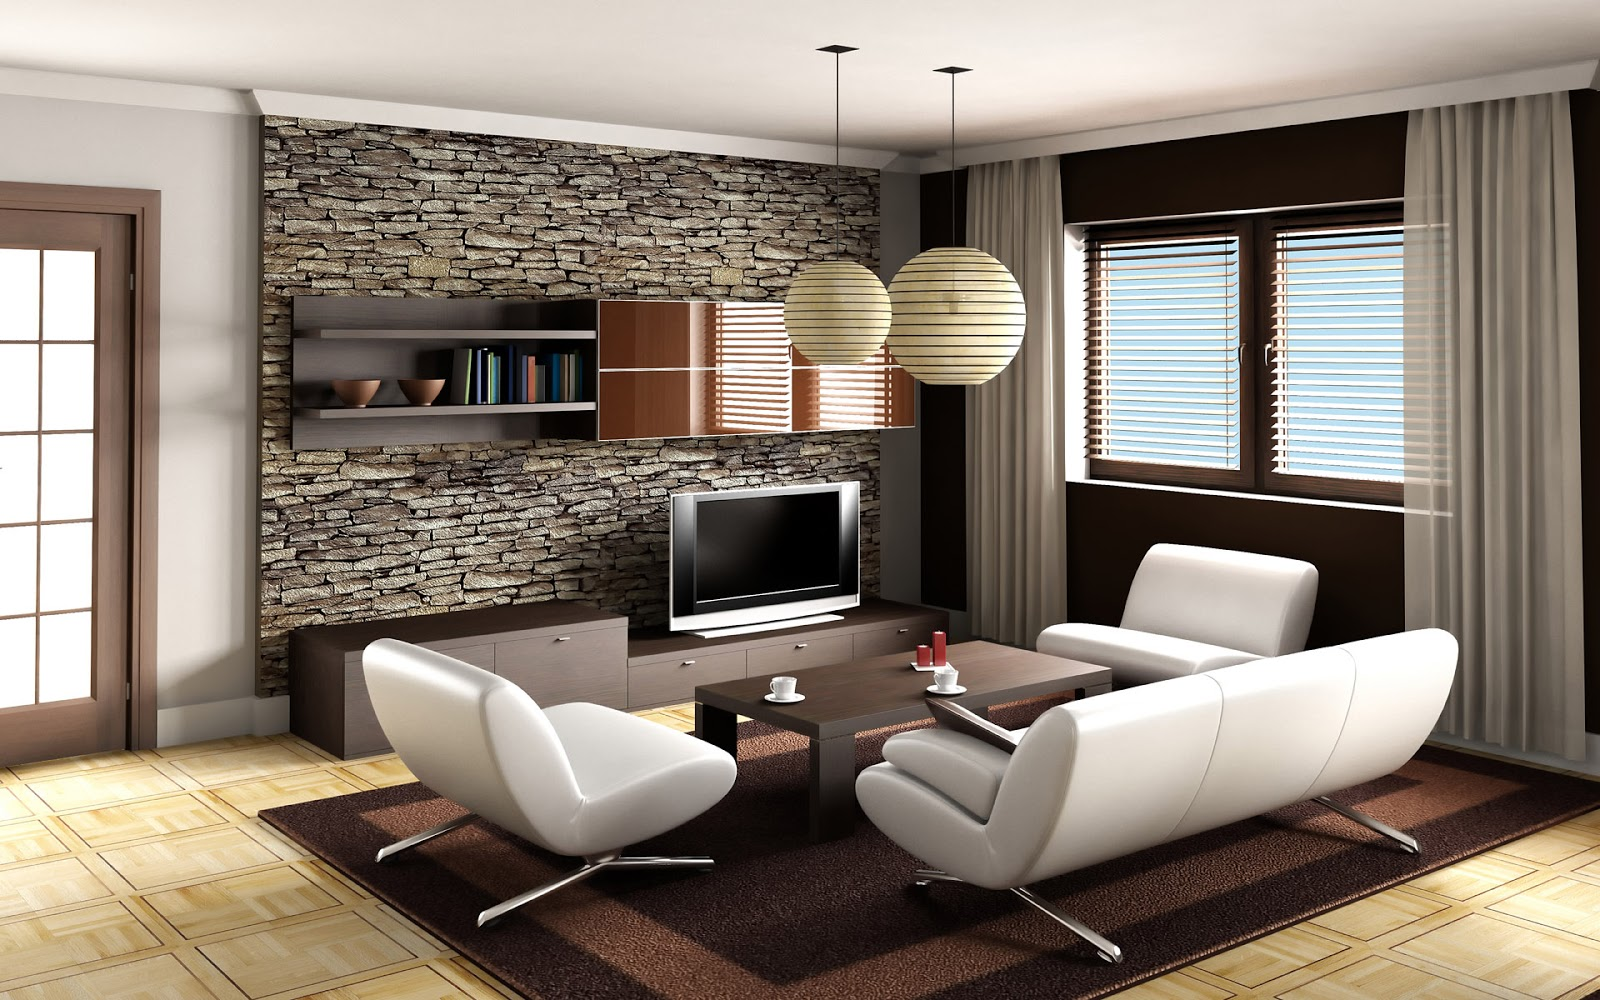 Arrangement of luxury living room ideas dream house for Interior design for living room images